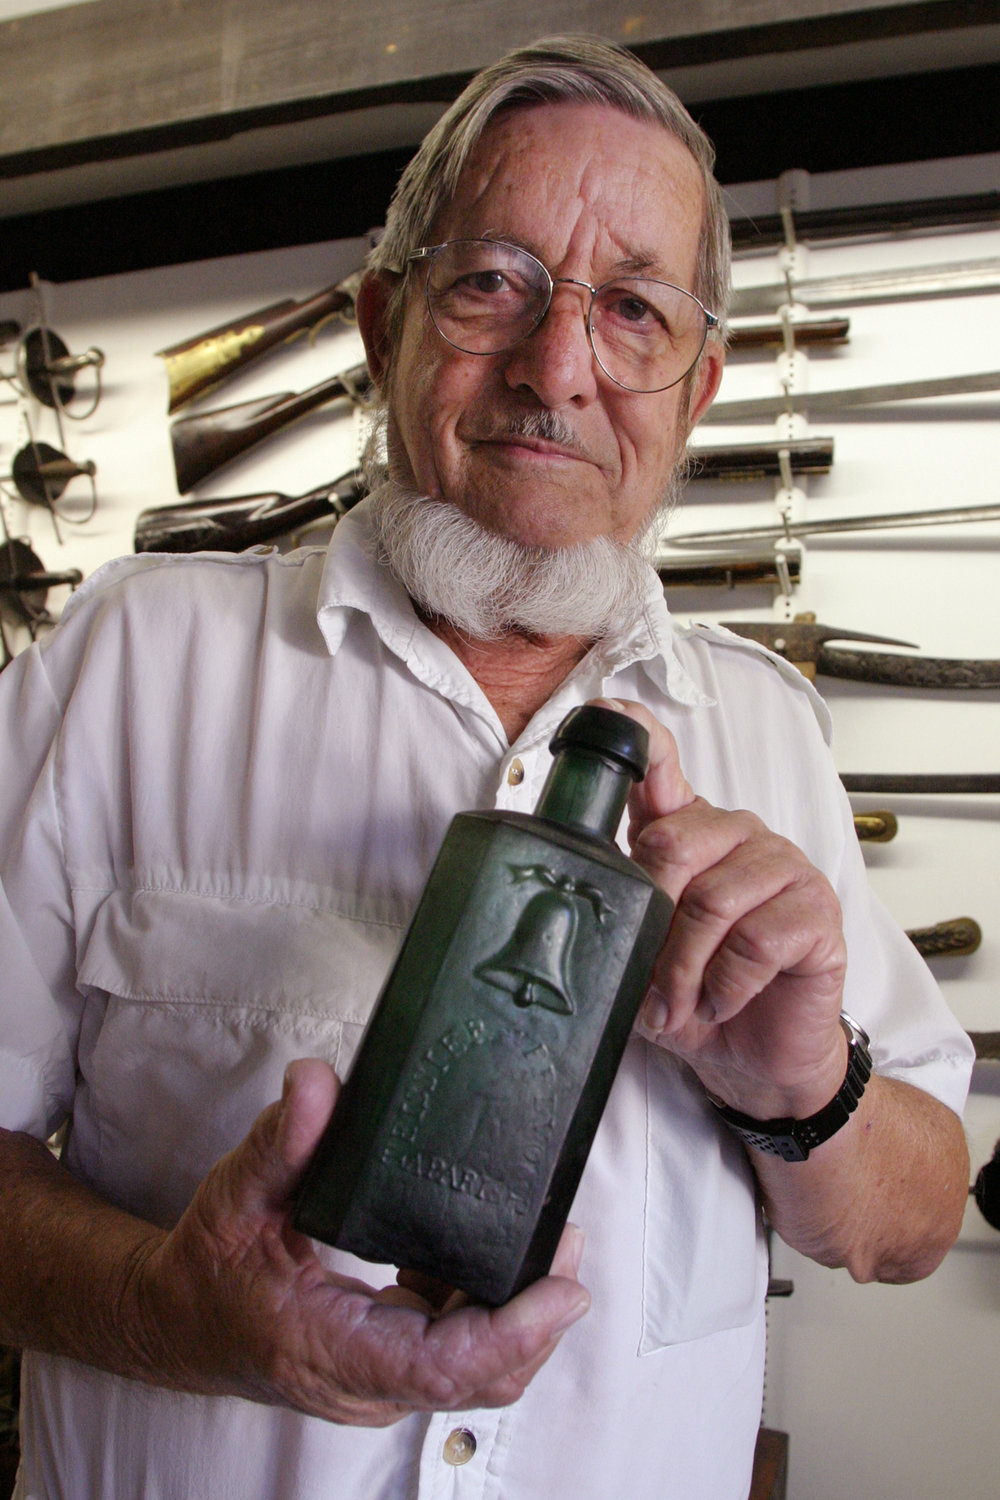 JACK WILLIAMS WITH OLD BOTTLE 2003, Photo by WALTER COKER